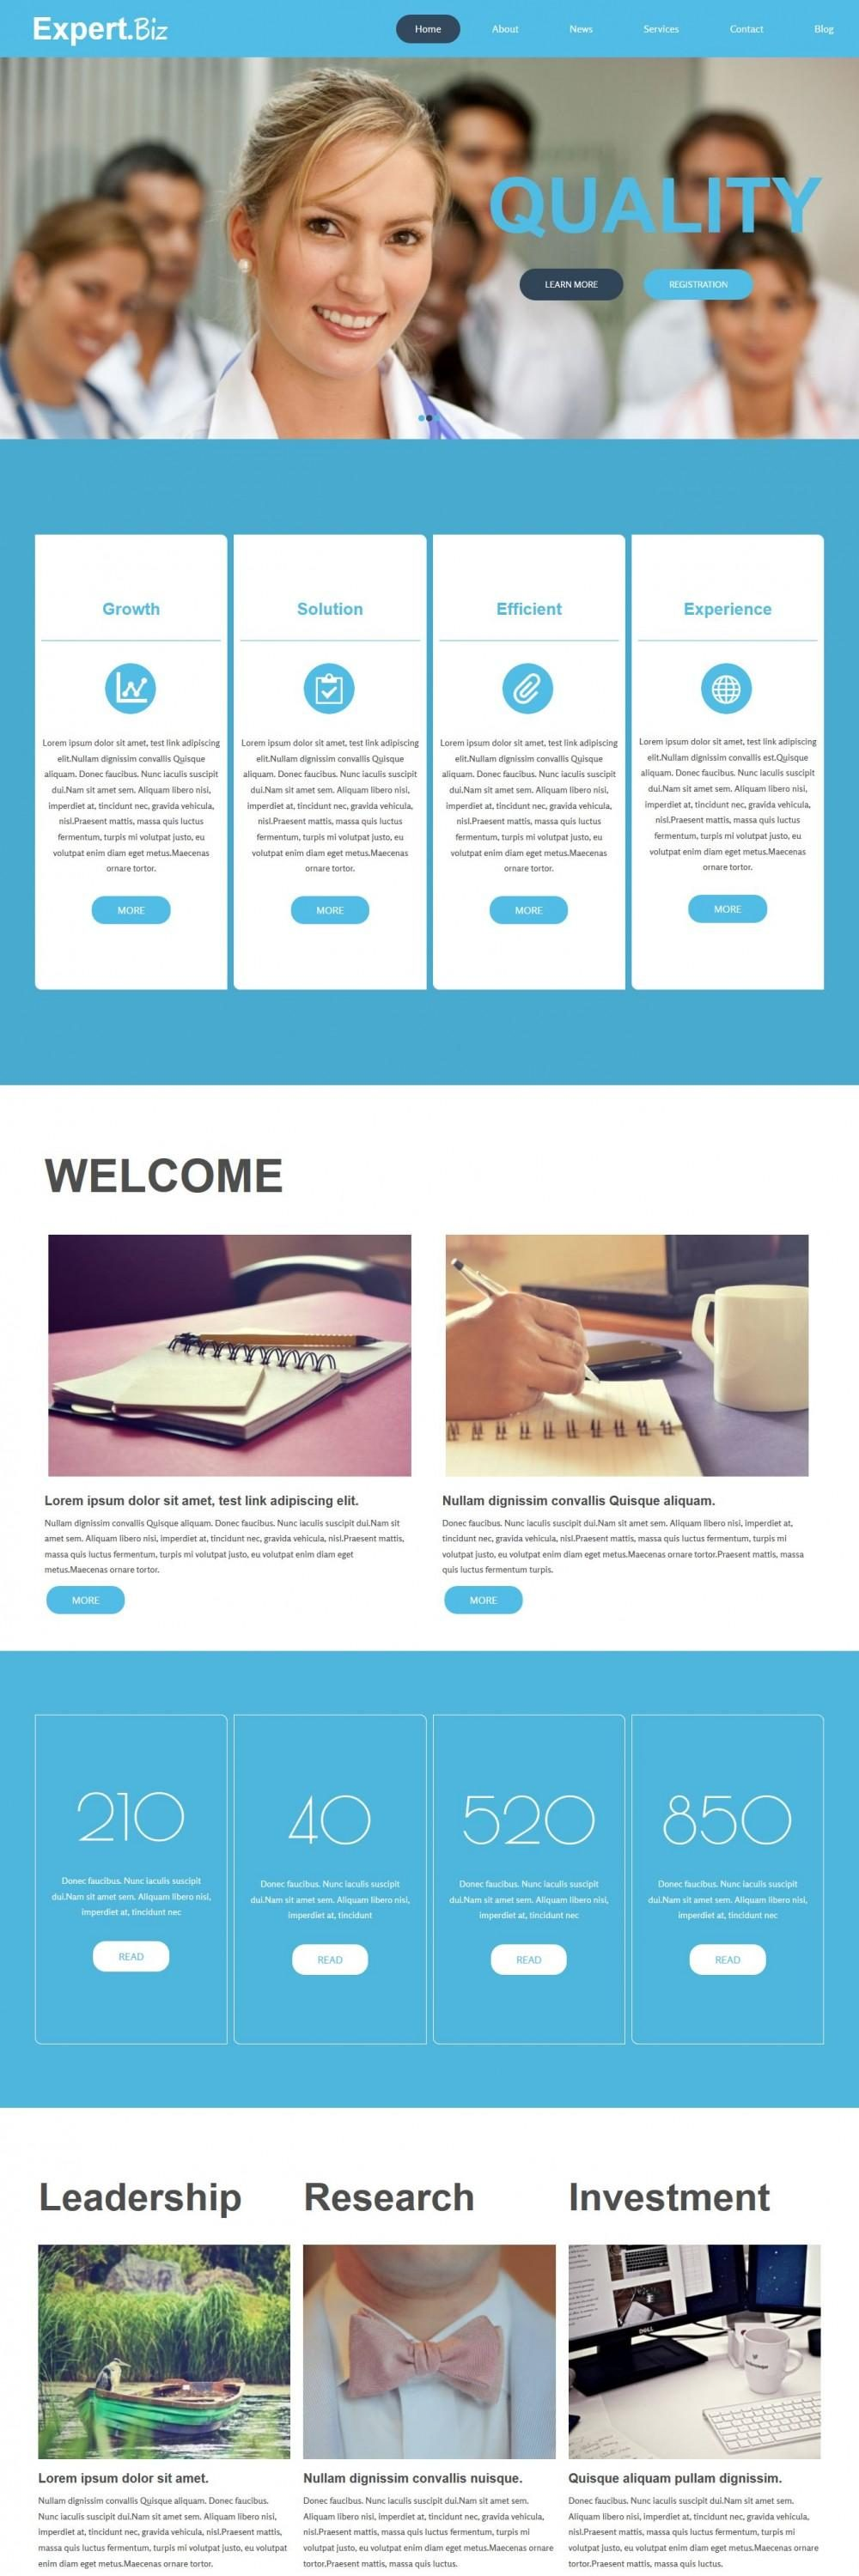 Expert Biz - Business WordPress Theme for Expert Advisor